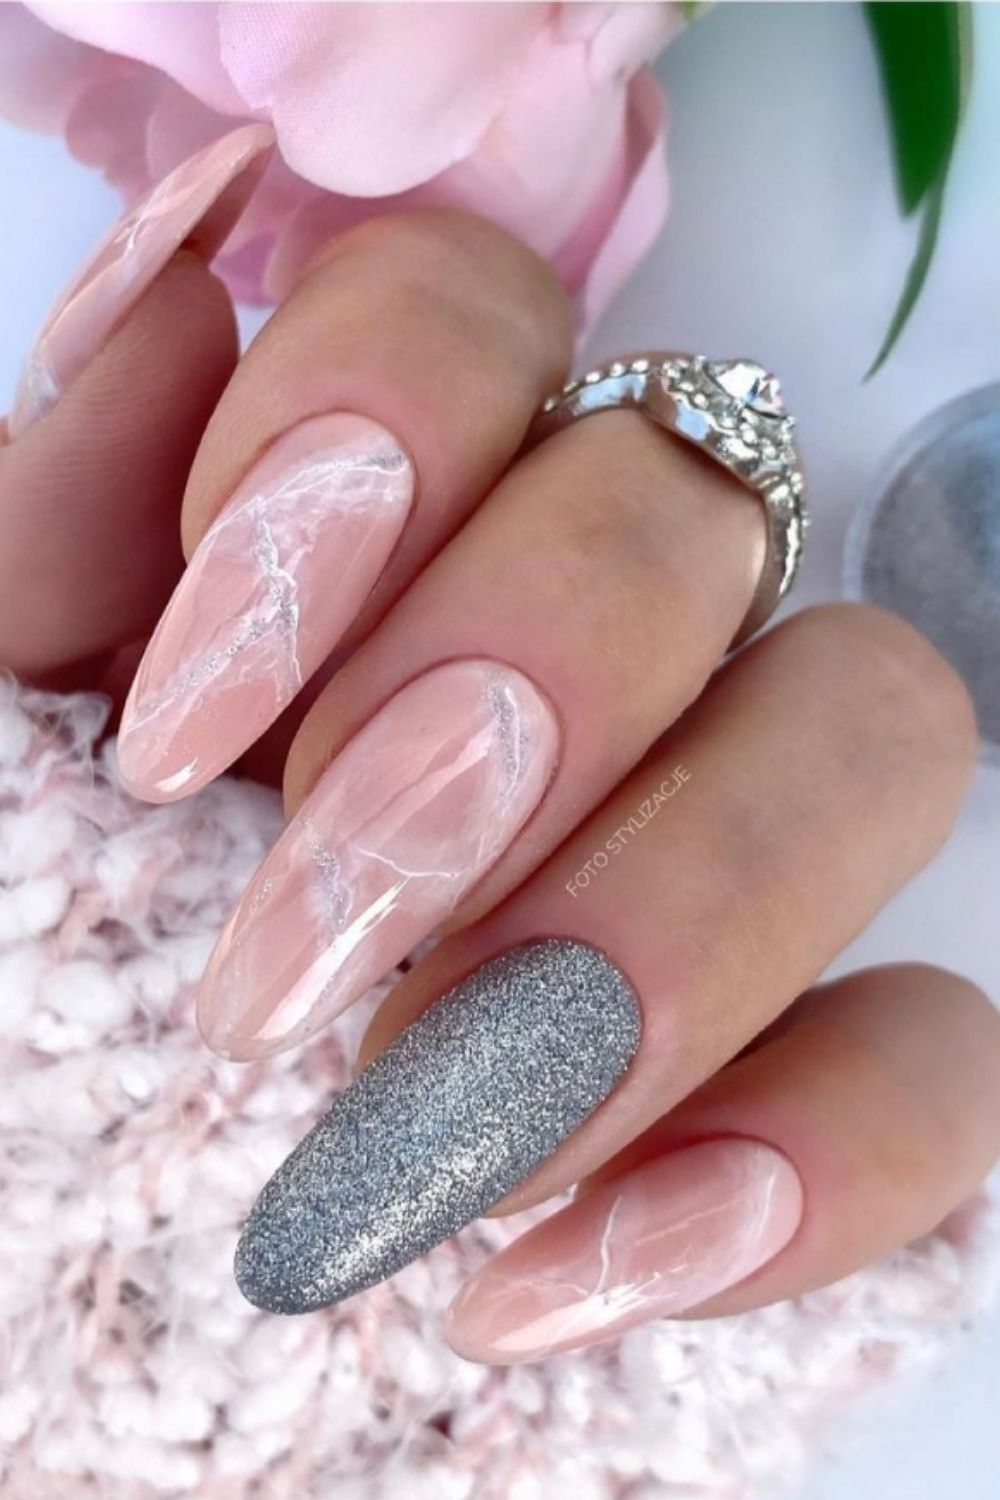 Spring nail colors | Best colors are trending right now